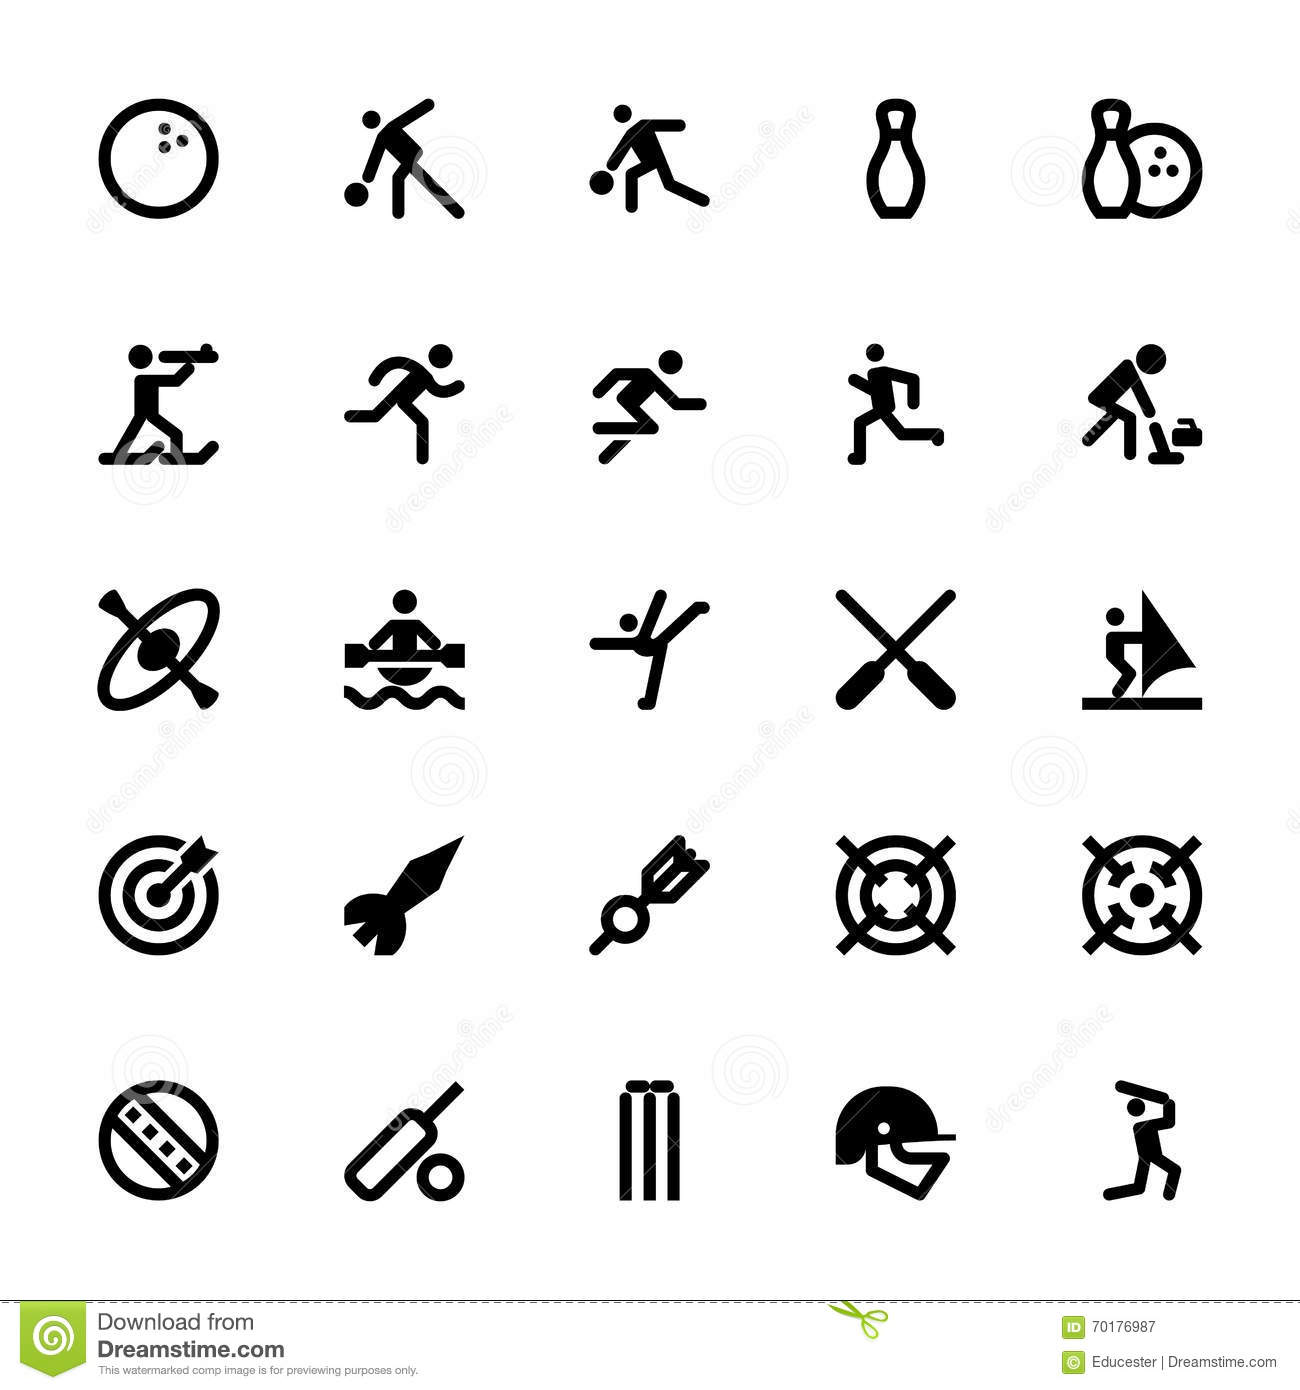 sports and games vector icons 8 stock illustration